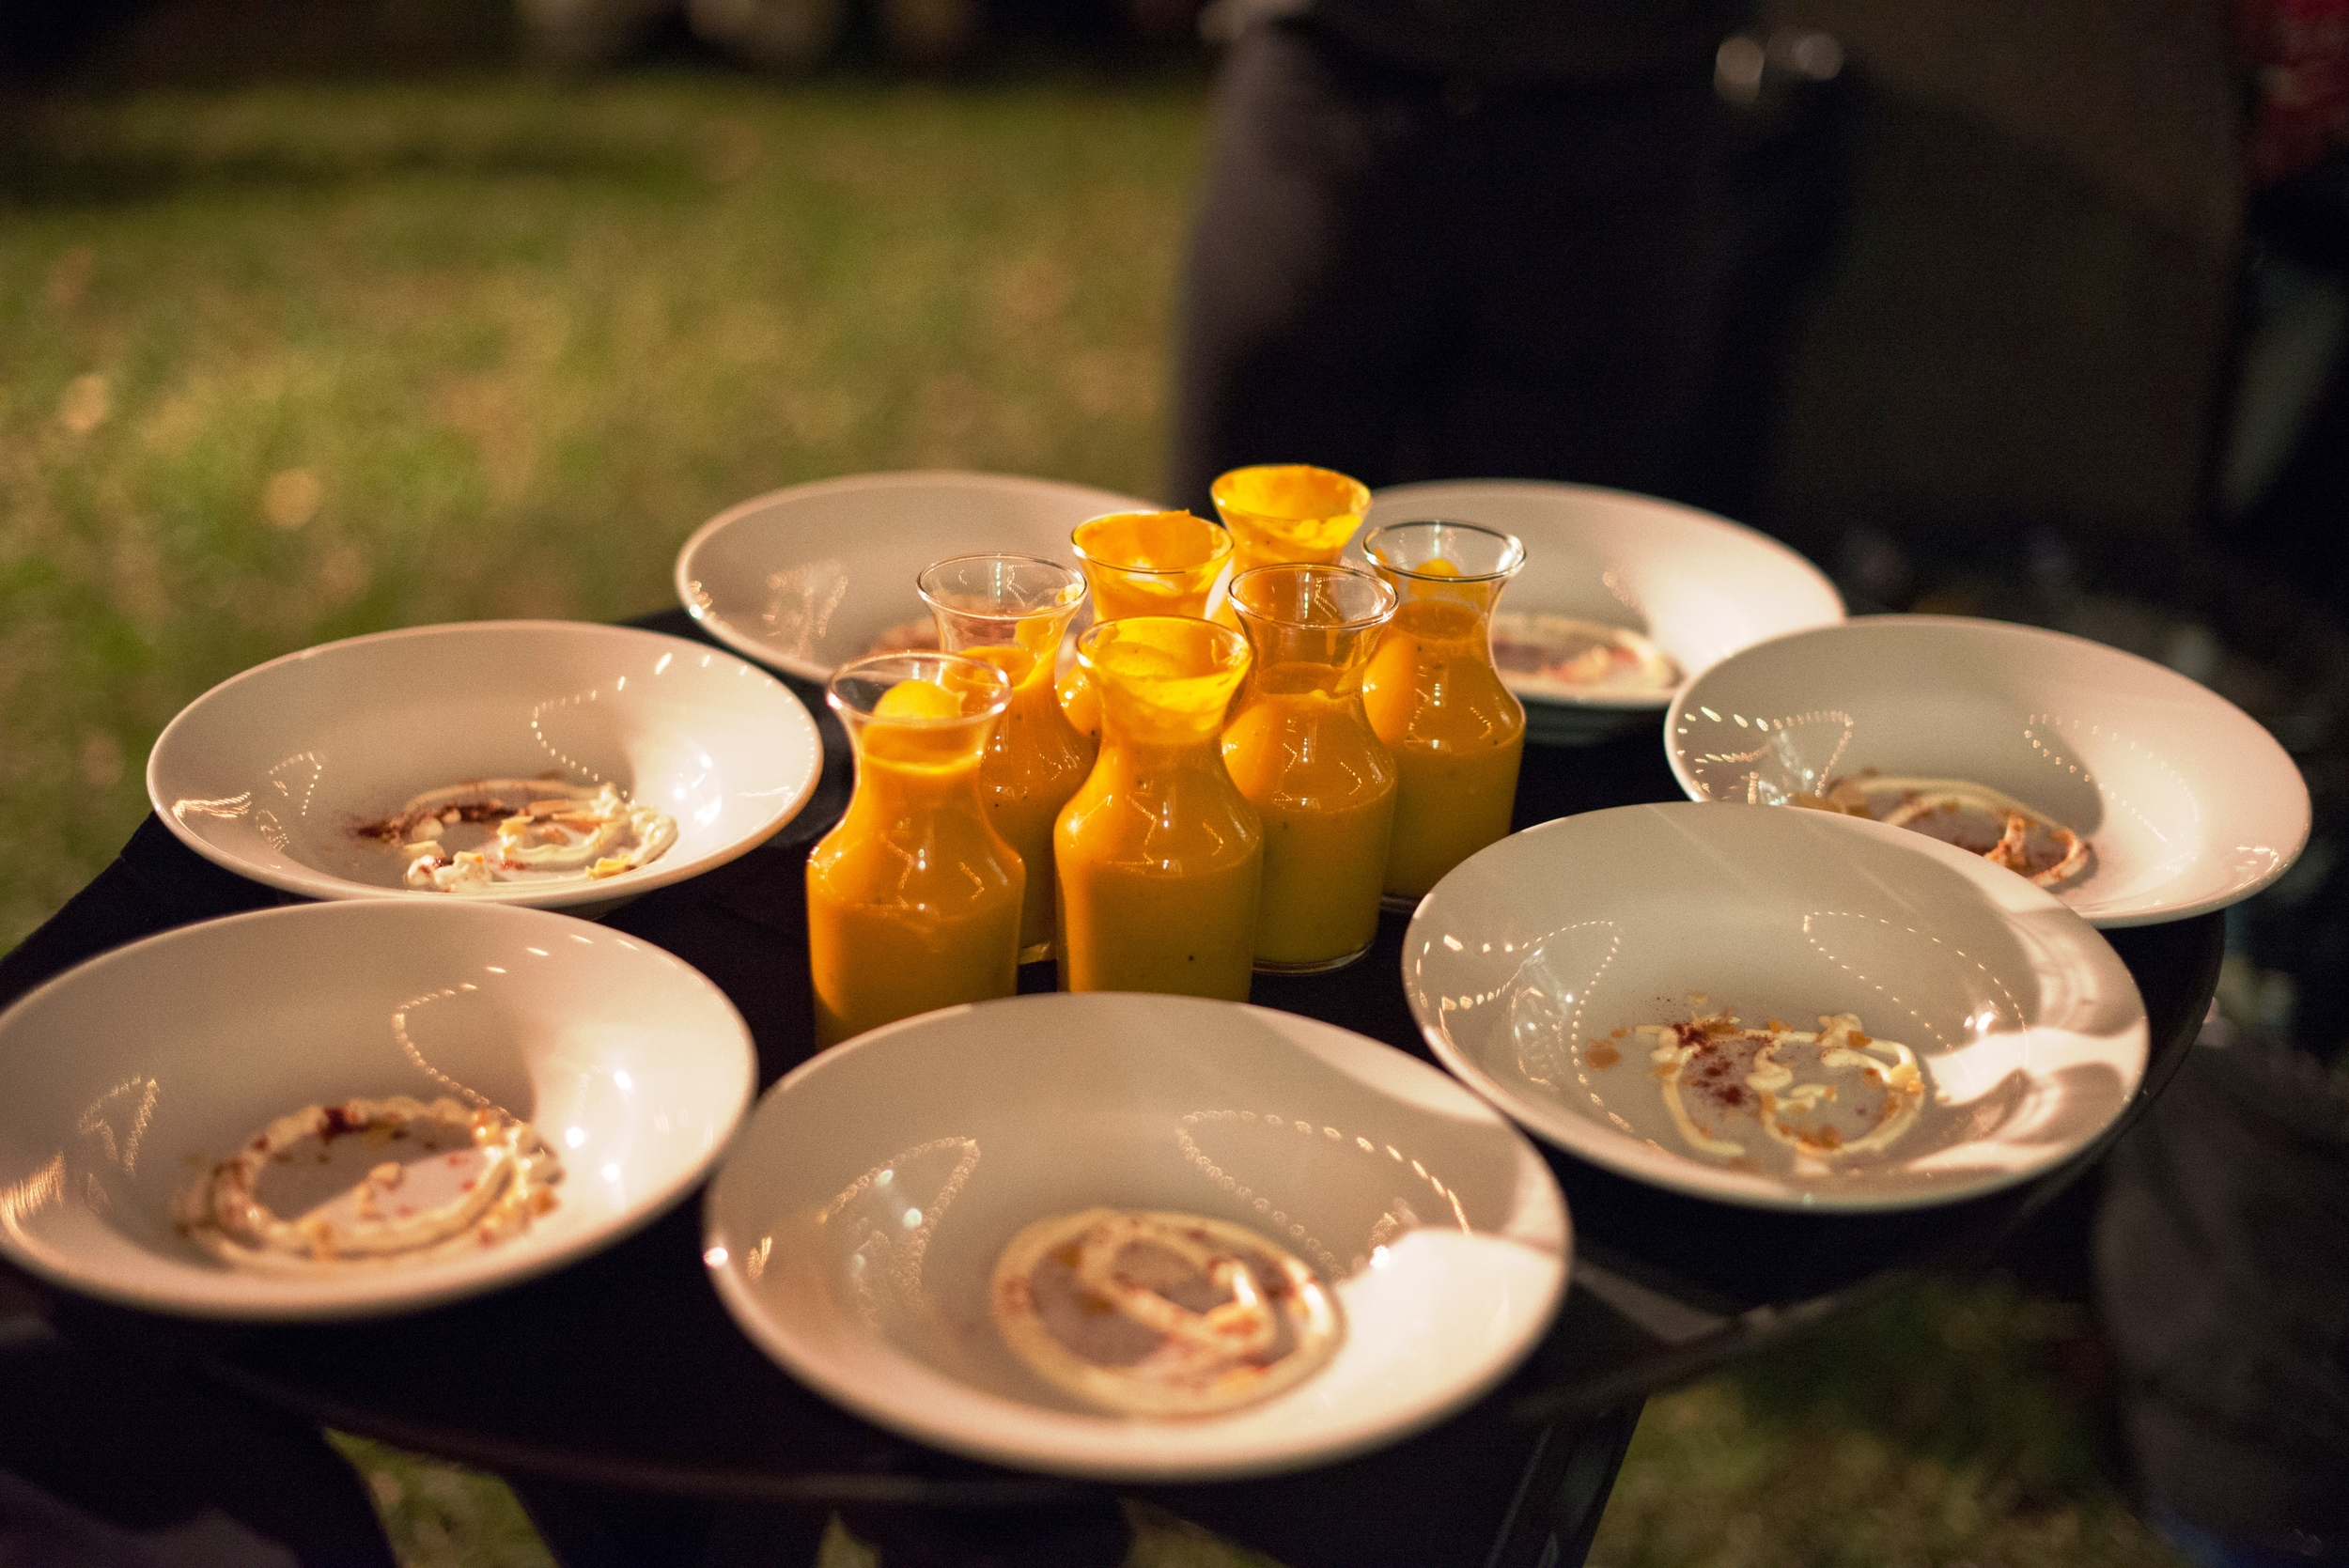 Carafes of autumnal butternut squash soup were poured over creme fraiche and served tableside